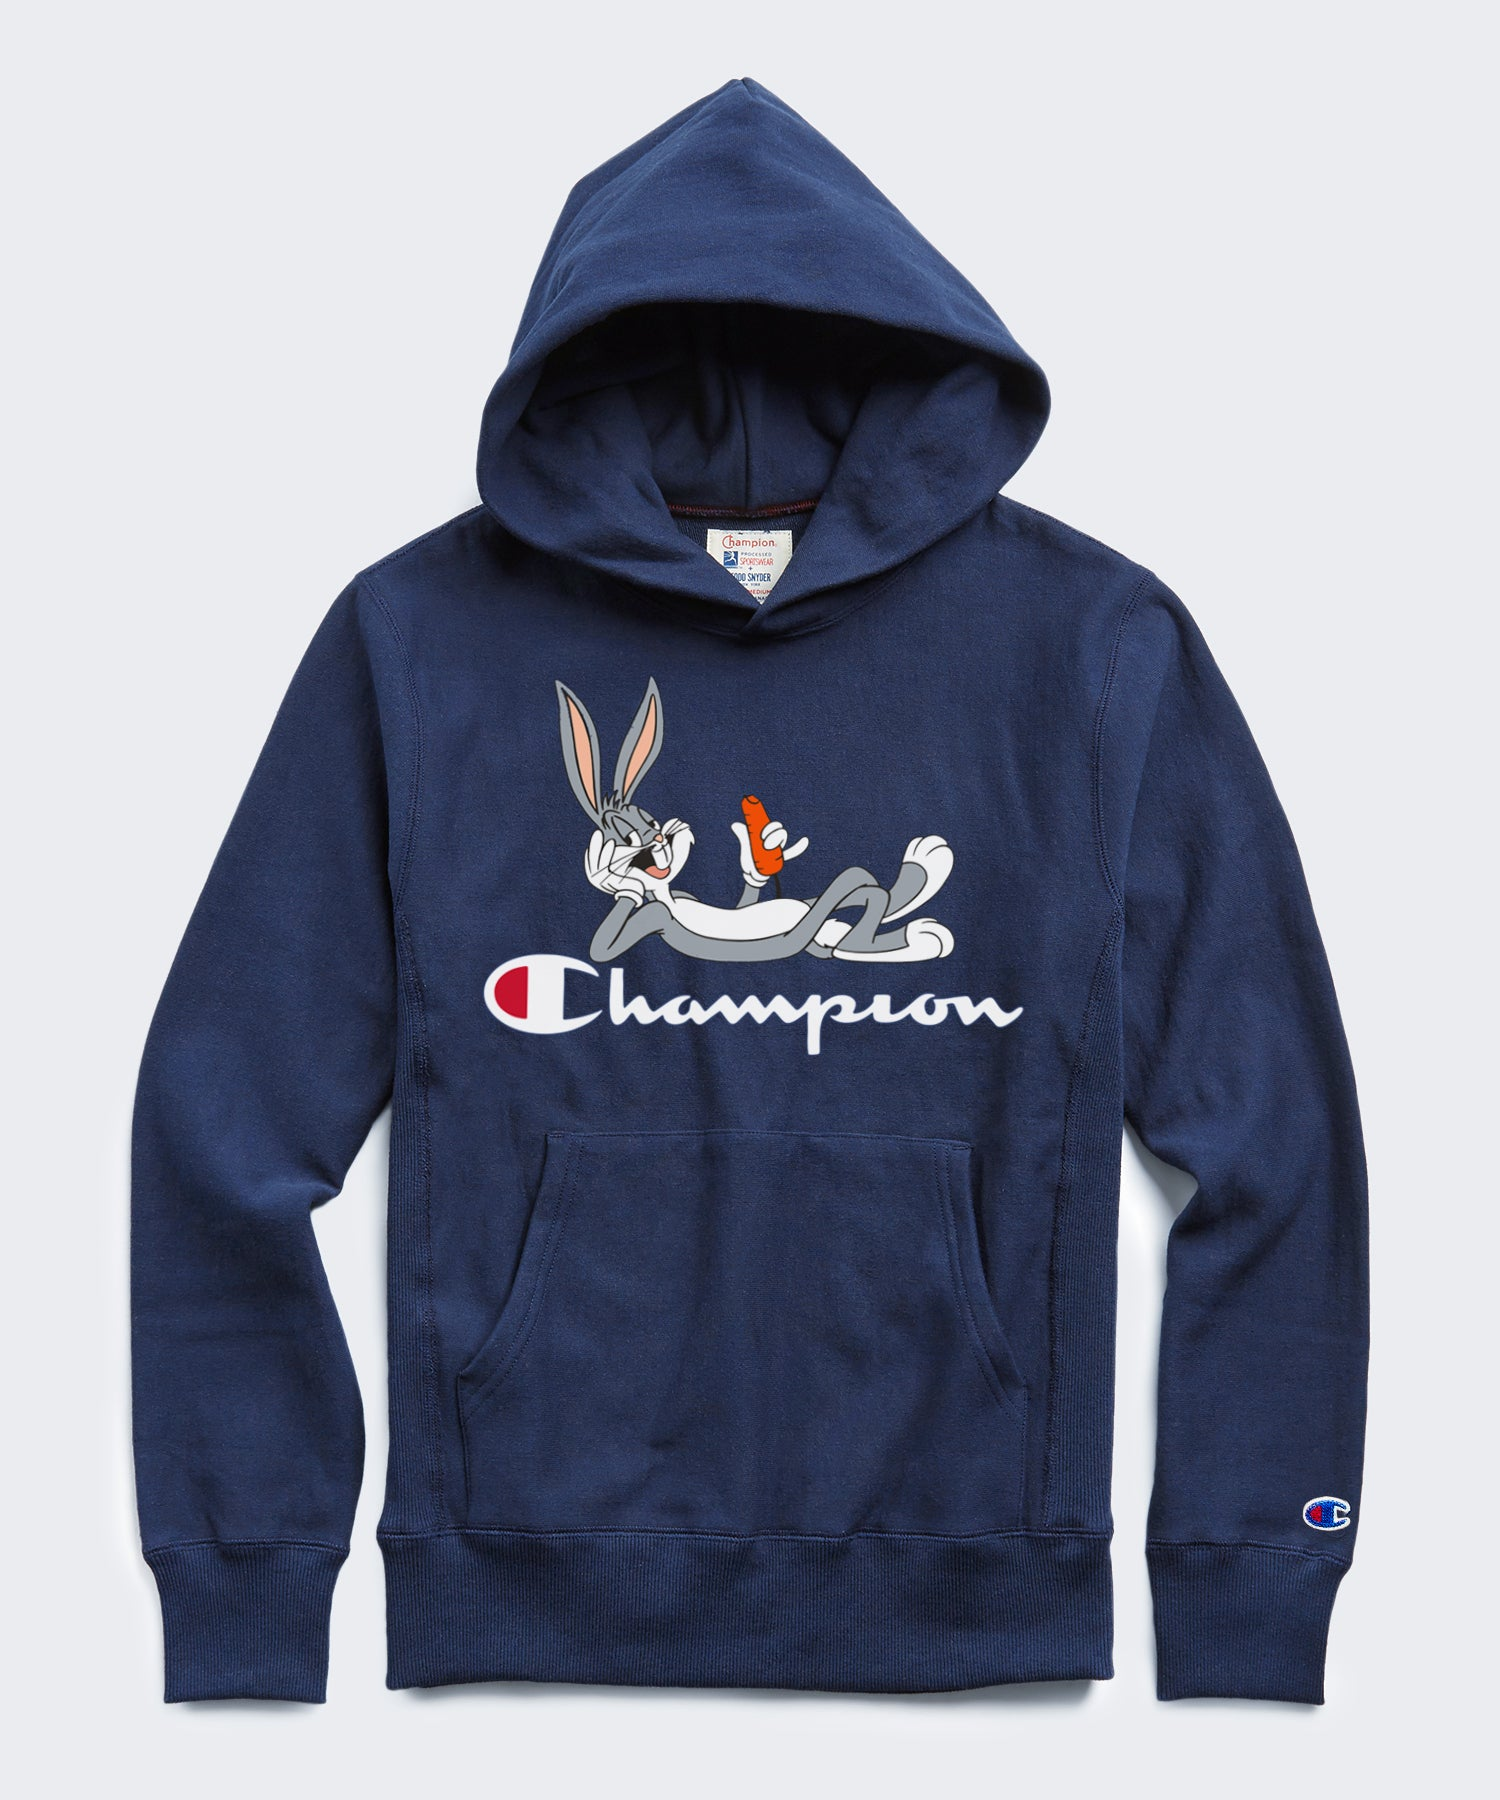 Champion + Looney Tunes Bugs Bunny Hoodie in Marine Blue